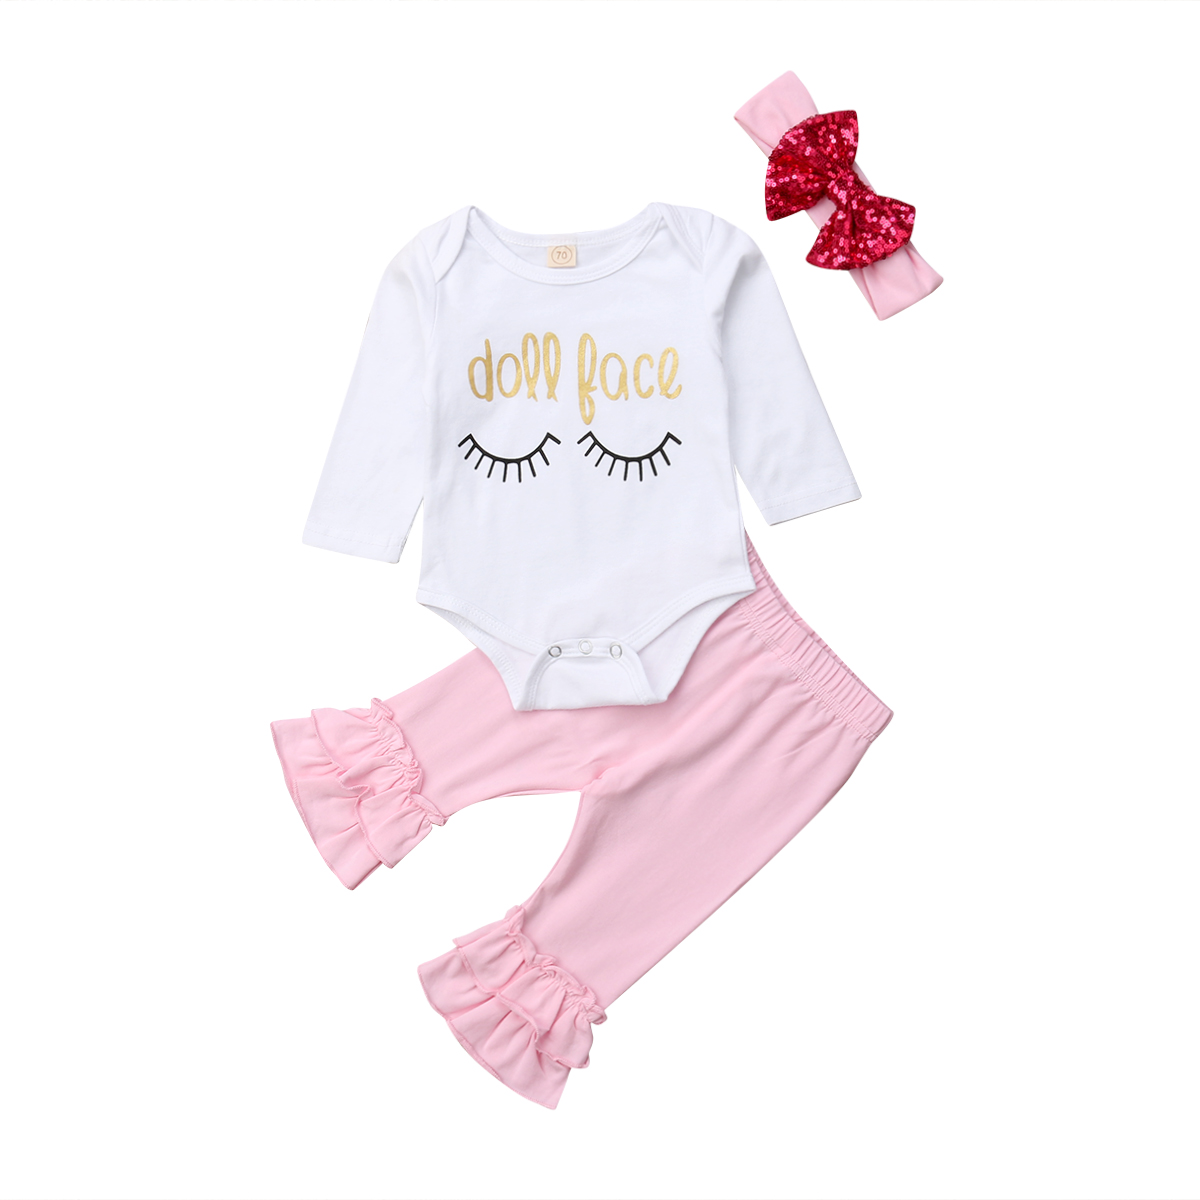 Cute 3PCS Newborn Baby Girl Boy Long Sleeve Top Blouse Pants Headband Outfit Set